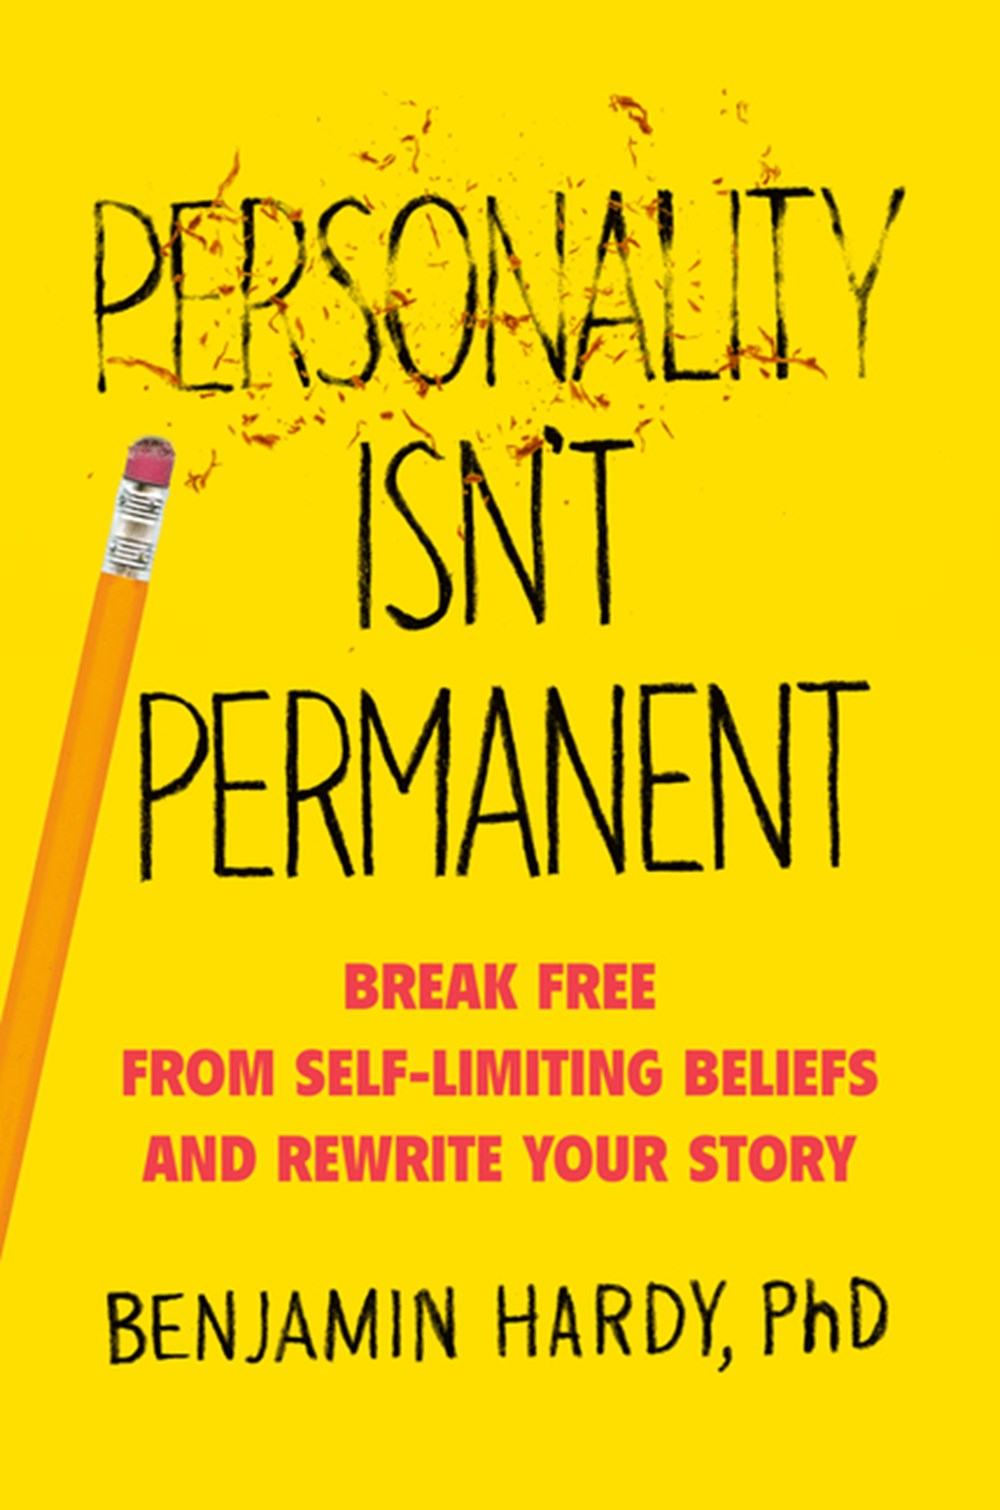 Personality Isn't Permanent Break Free from Self-Limiting Beliefs and Rewrite Your Story